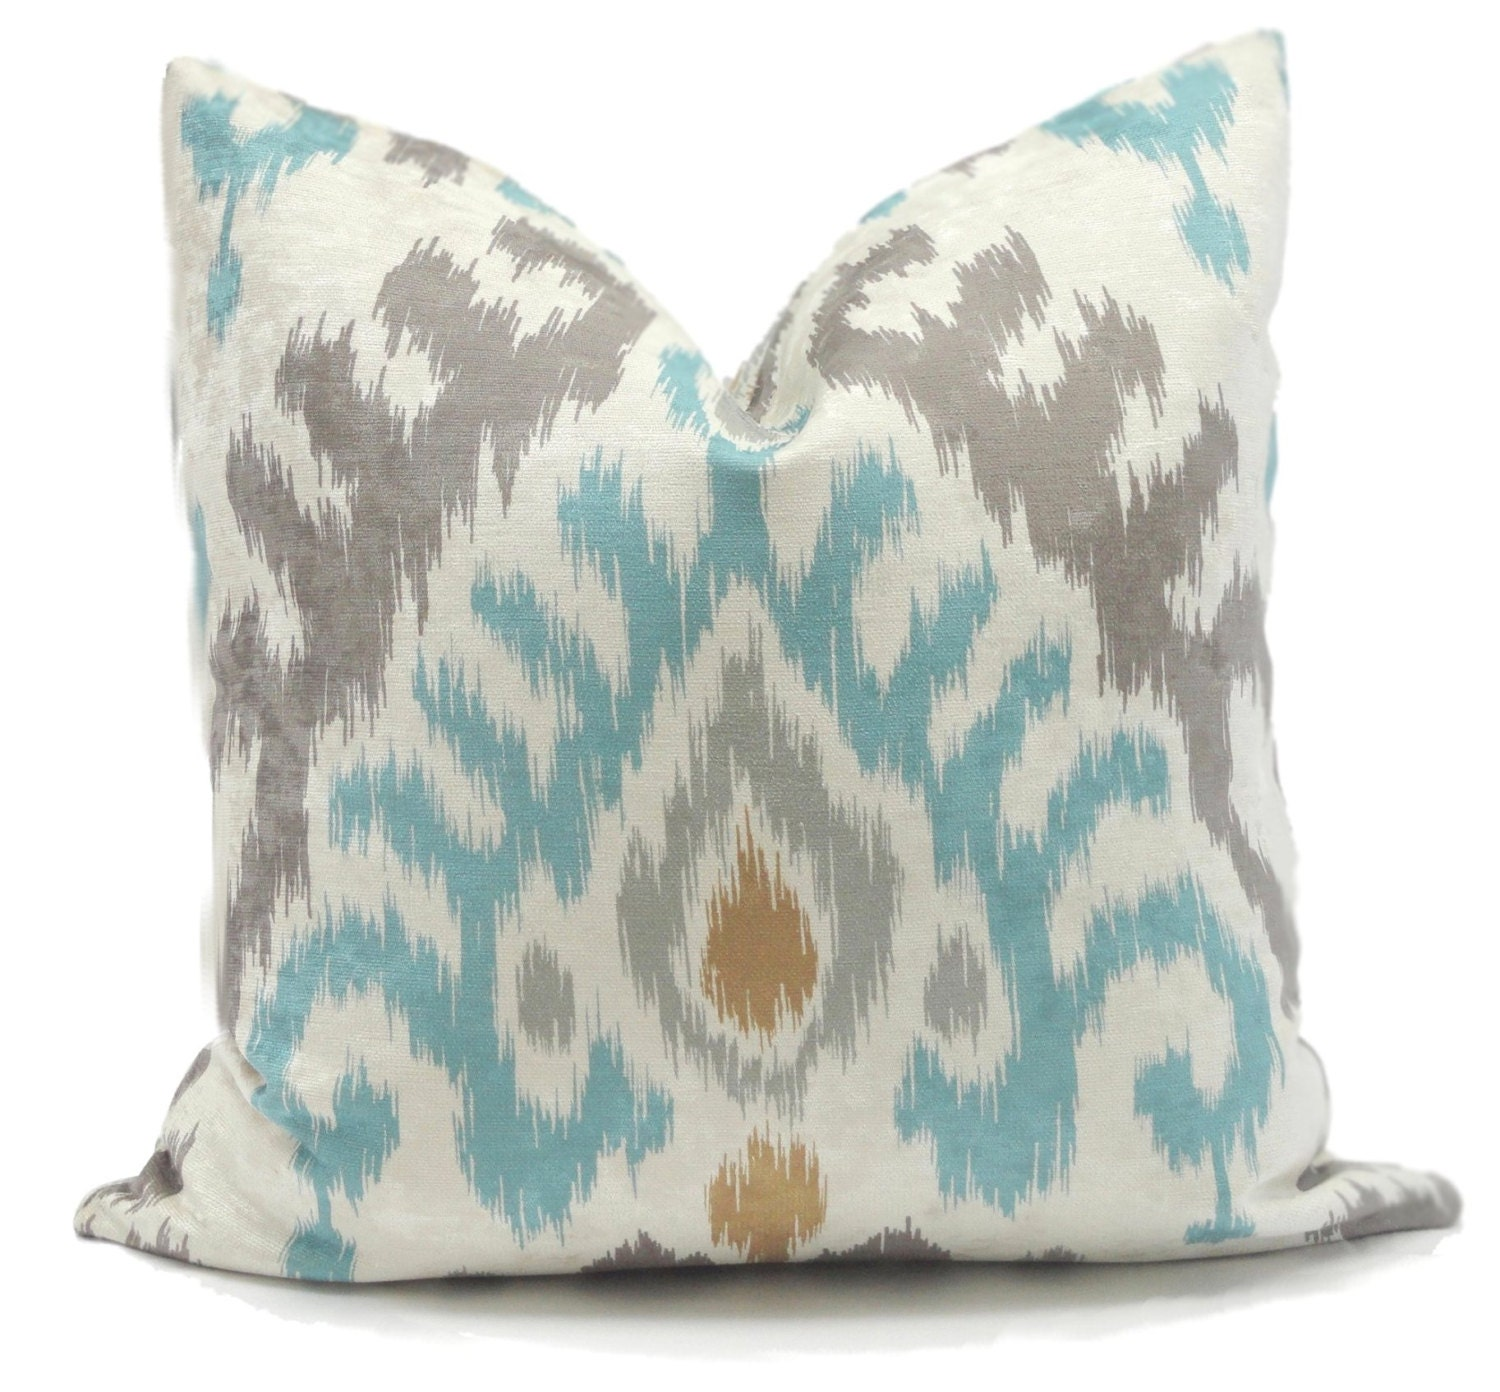 Decorative Throw Pillows Etsy : Kravet Aqua Gray Velvet Ikat Decorative Pillow Cover Lumbar